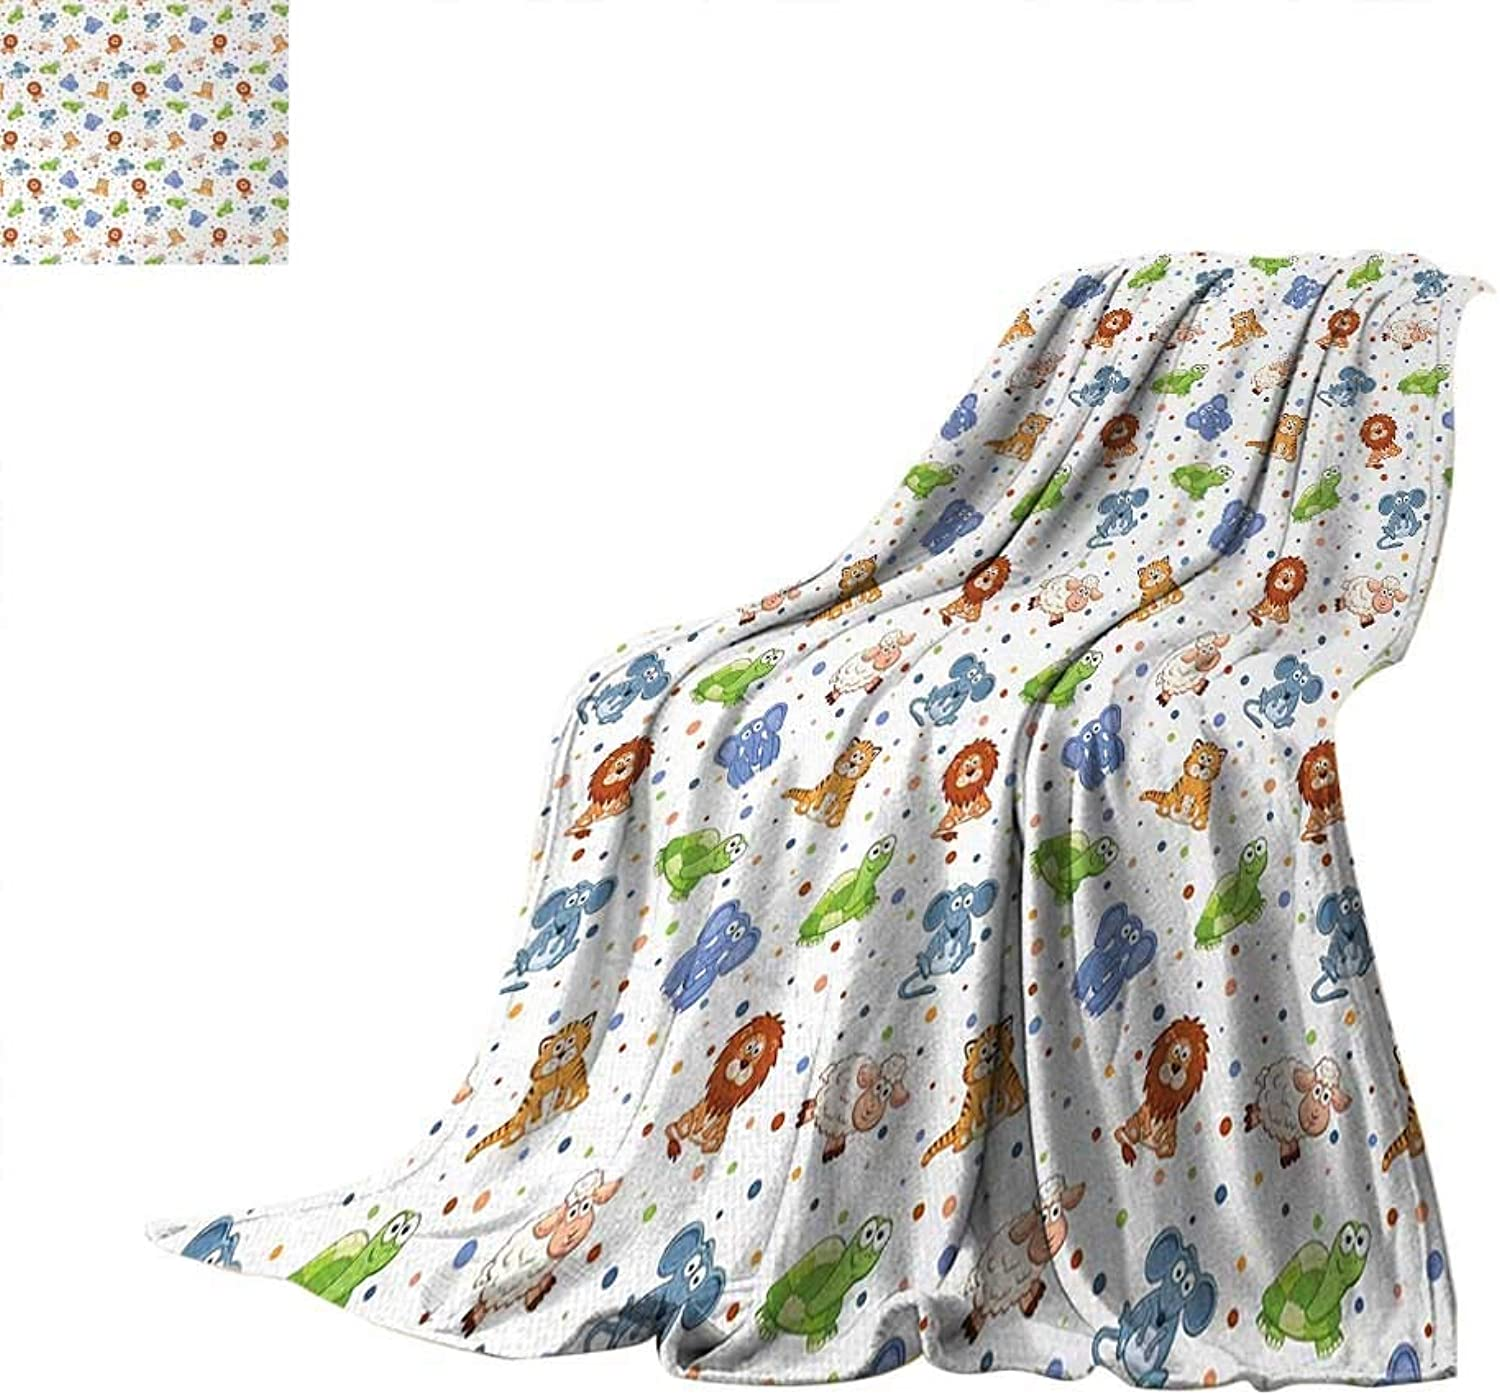 VAMIX Animal Digital Printing Blanket Funny Kids Cartoon Characters Cat Lion Mouse Elephant Turtle Sheep colorful Dots Print Artwork Image 62 x60  Multicolor